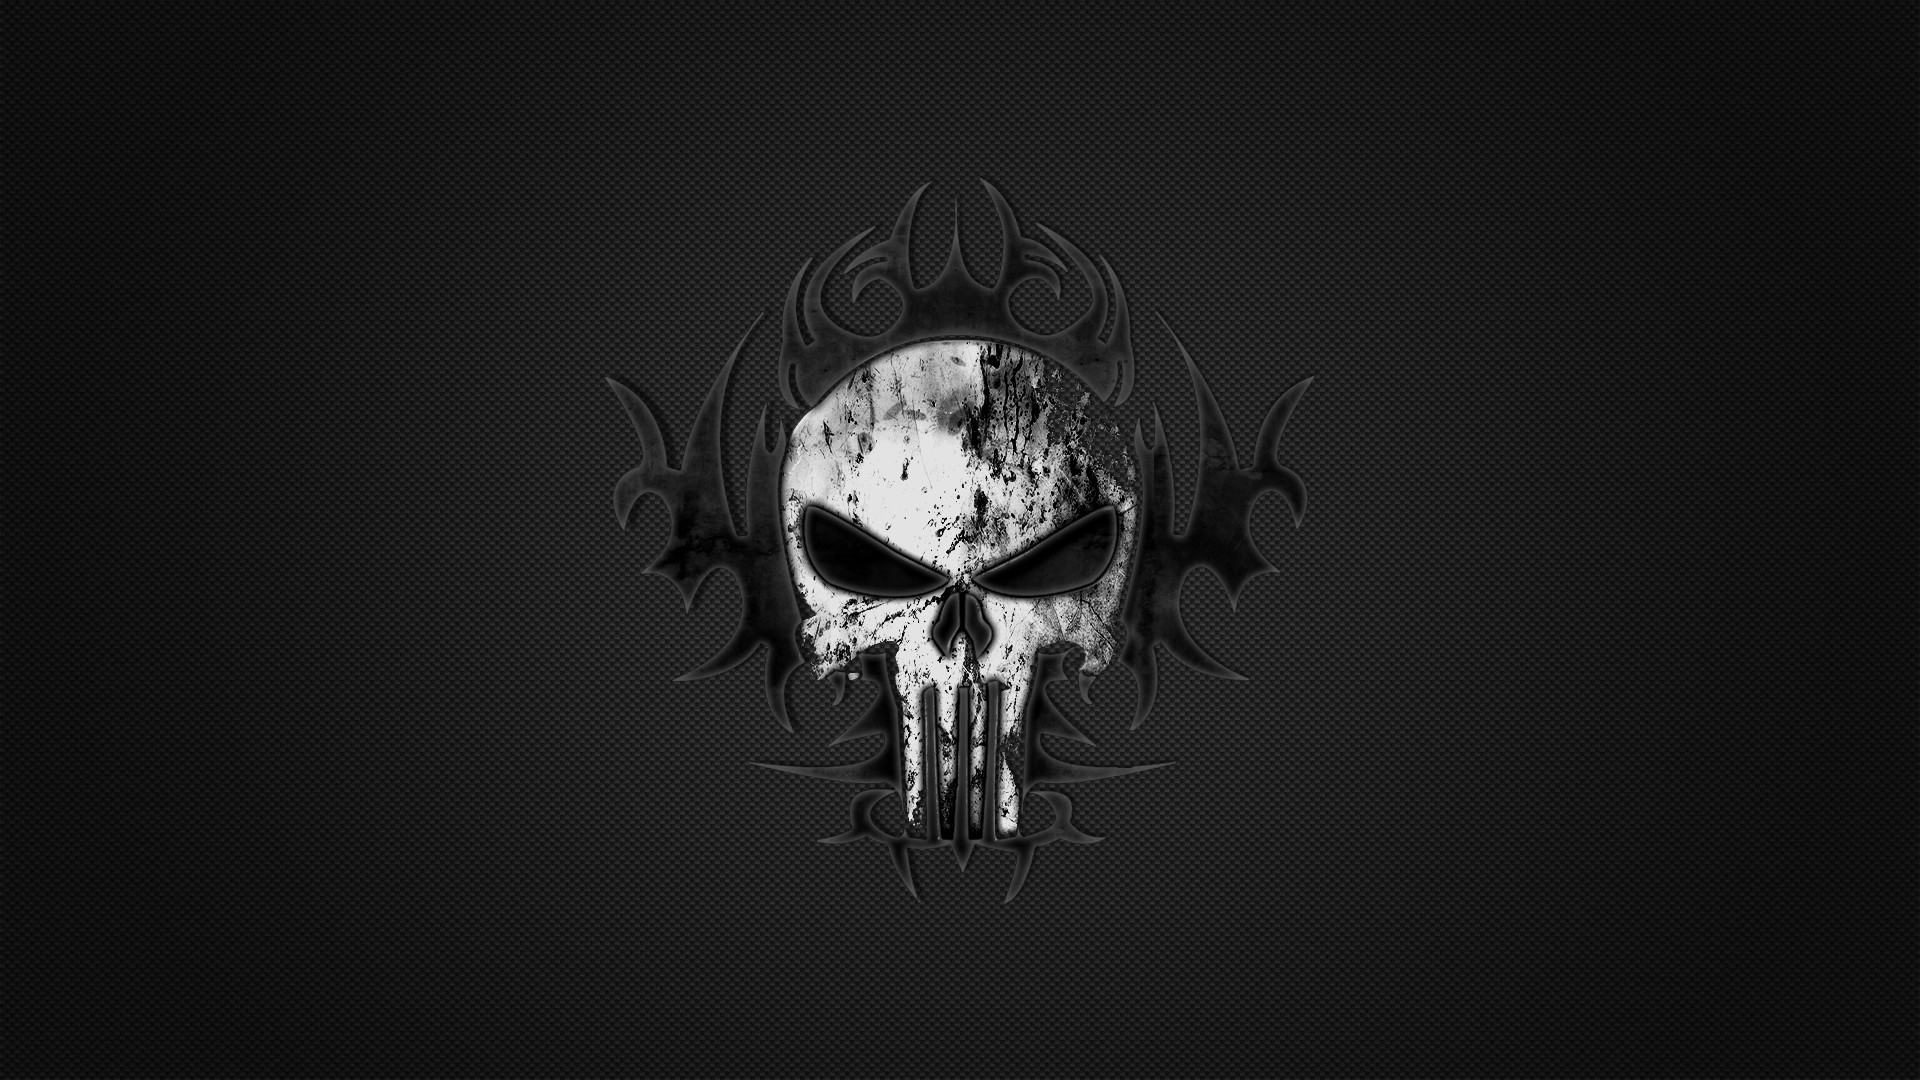 Res: 1920x1080, Punisher Images For Desktop Wallpaper 1920 x 1080 px 623.08 KB max skull  logo widescreen desktop